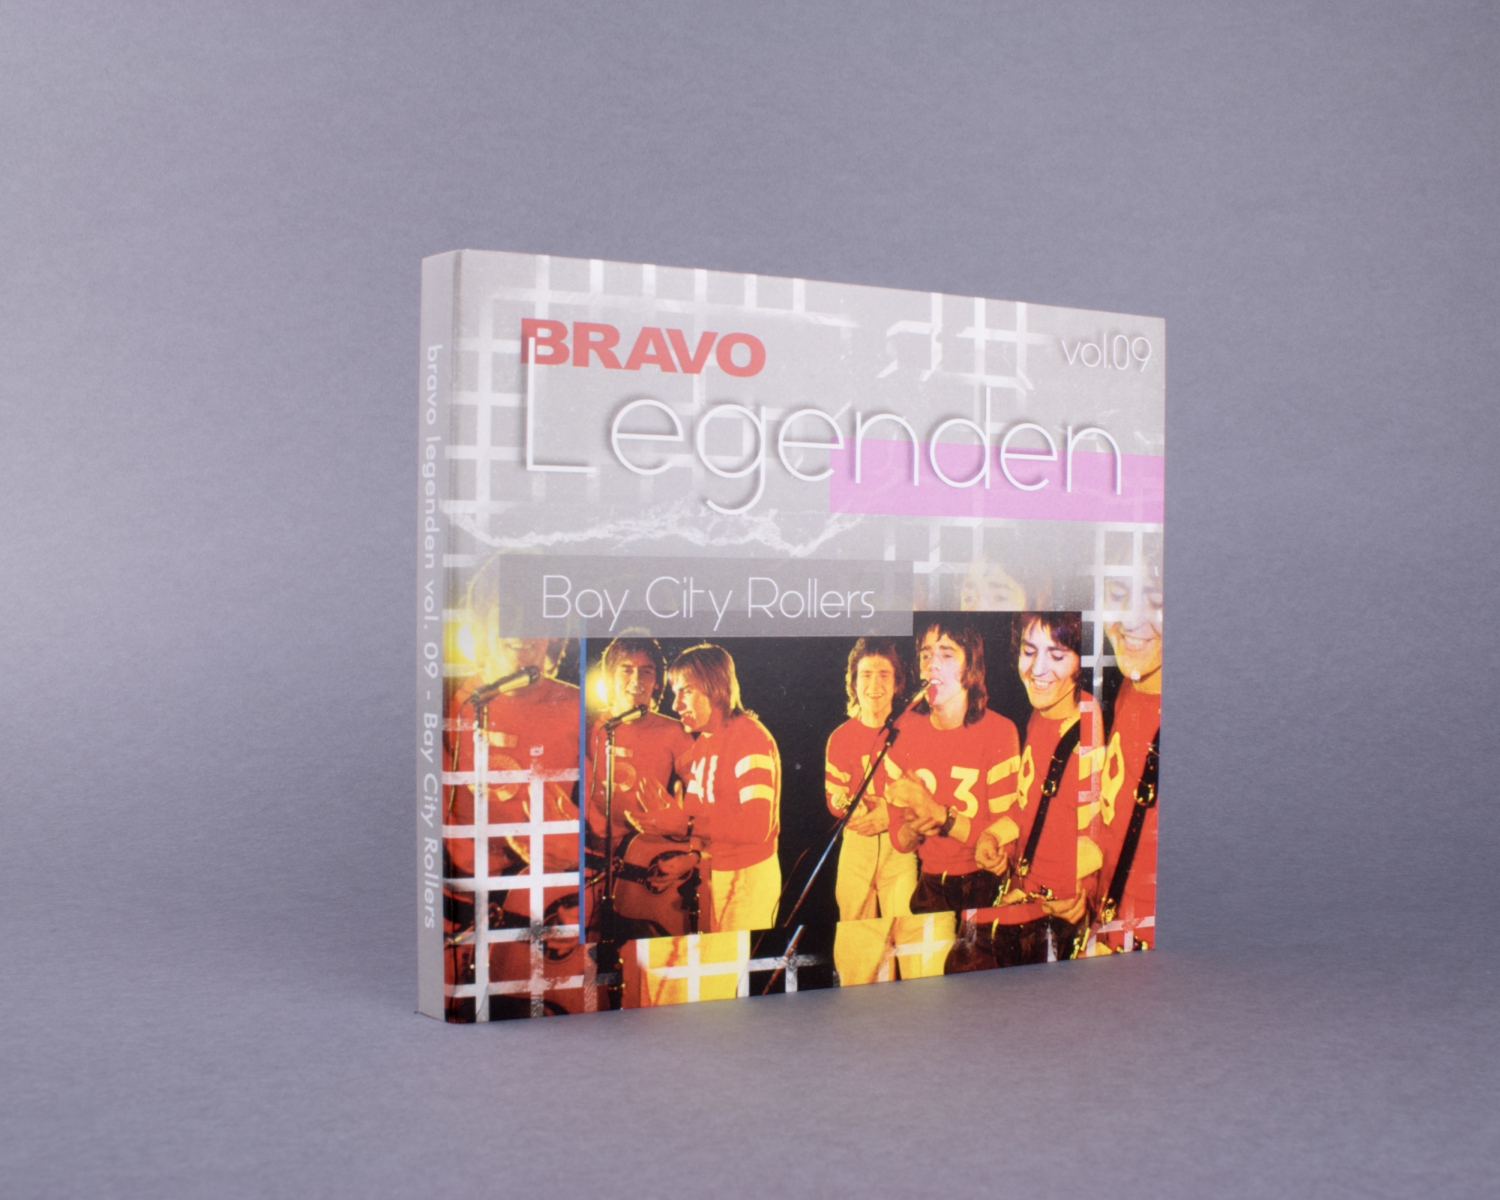 BRAVO Legenden Vol. 09 – BAY CITY ROLLERS